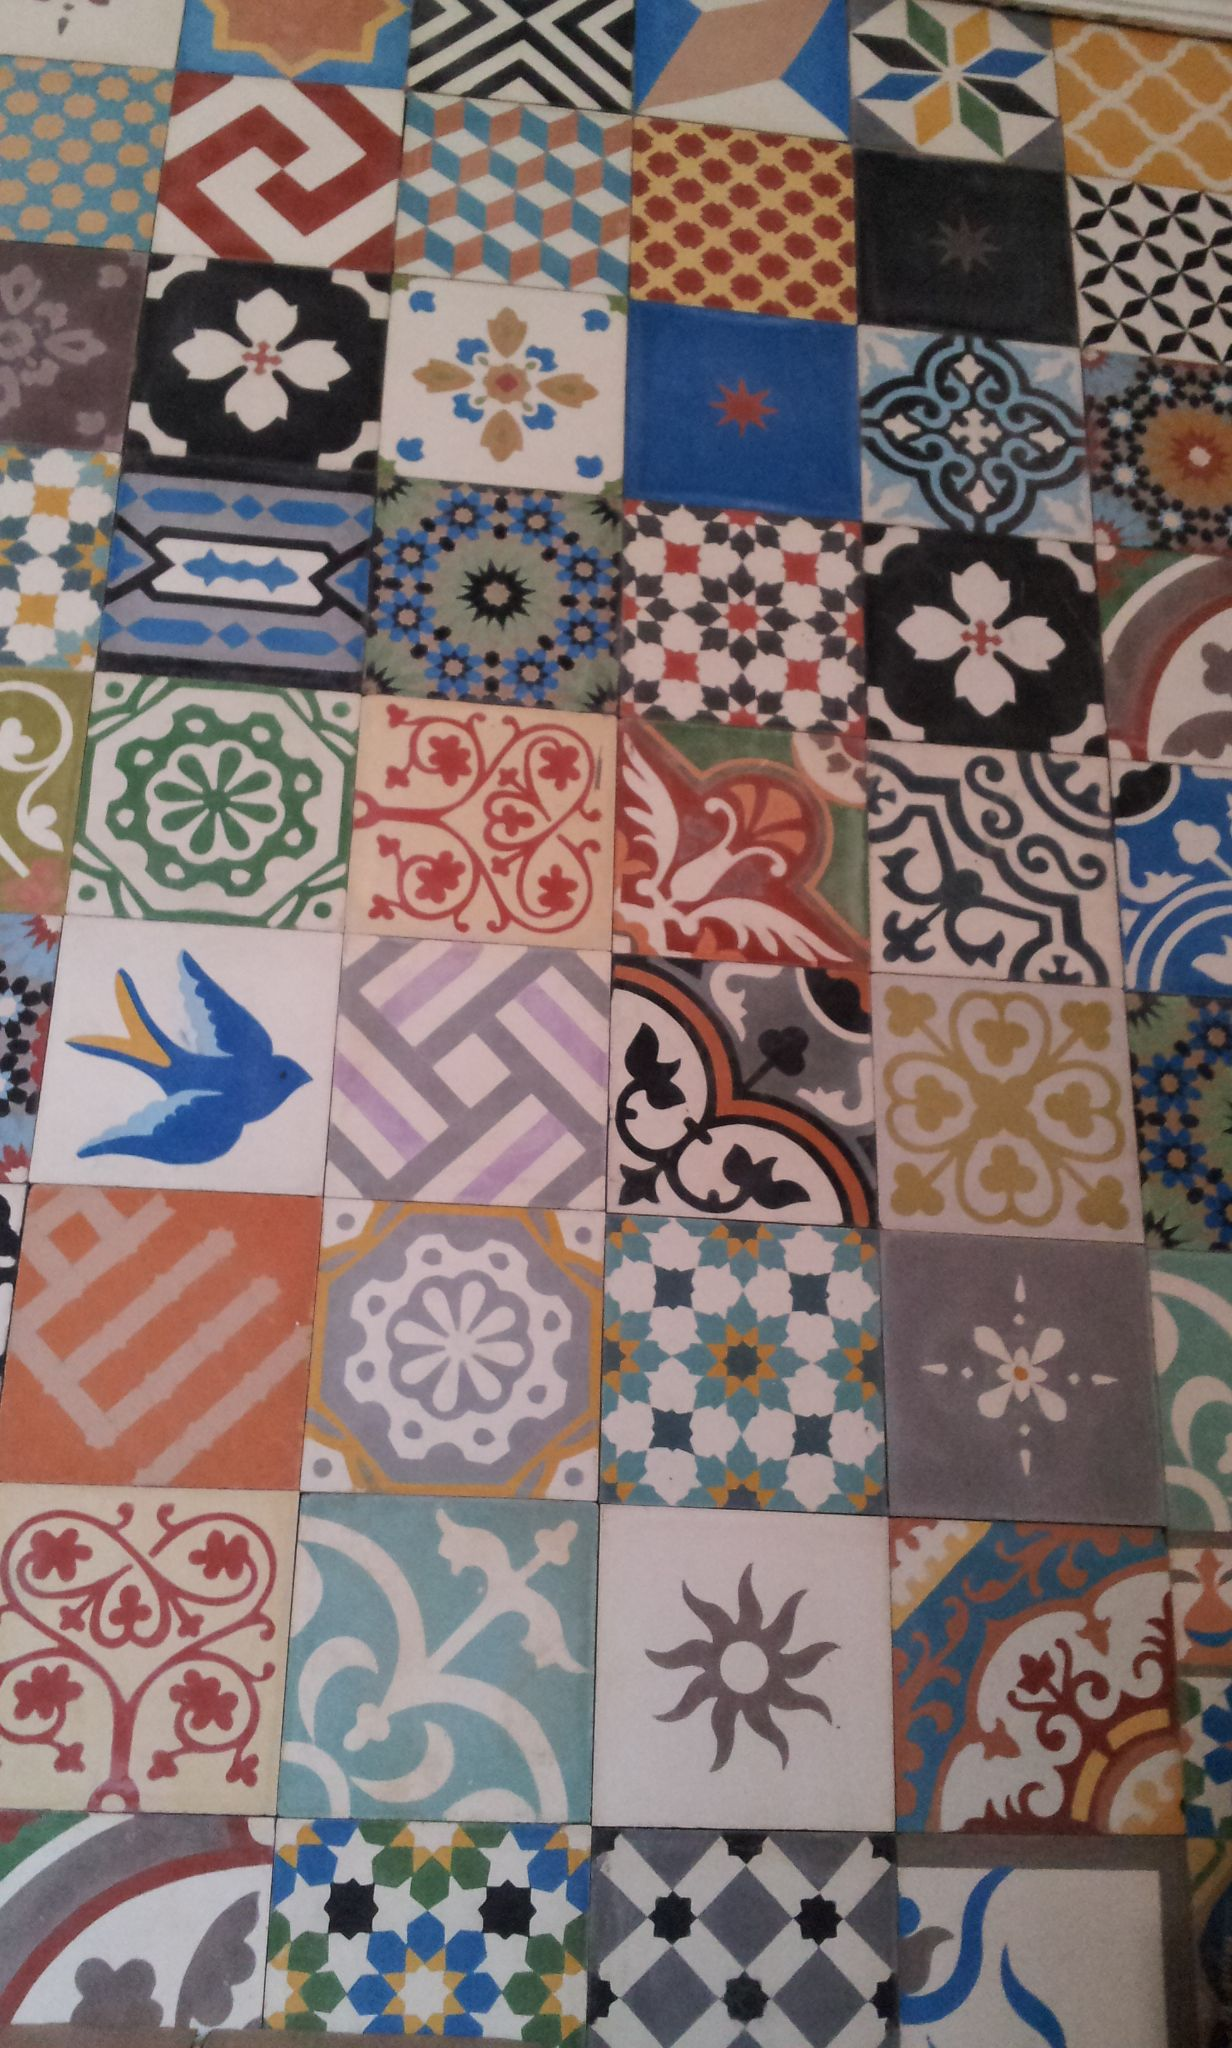 Beautiful moroccan tiles handmade tiles can be colour coordinated ibiza dan aan de muur beautiful moroccan tiles handmade tiles can be colour coordinated and customized re shape texture pattern etc by ceramic design dailygadgetfo Gallery